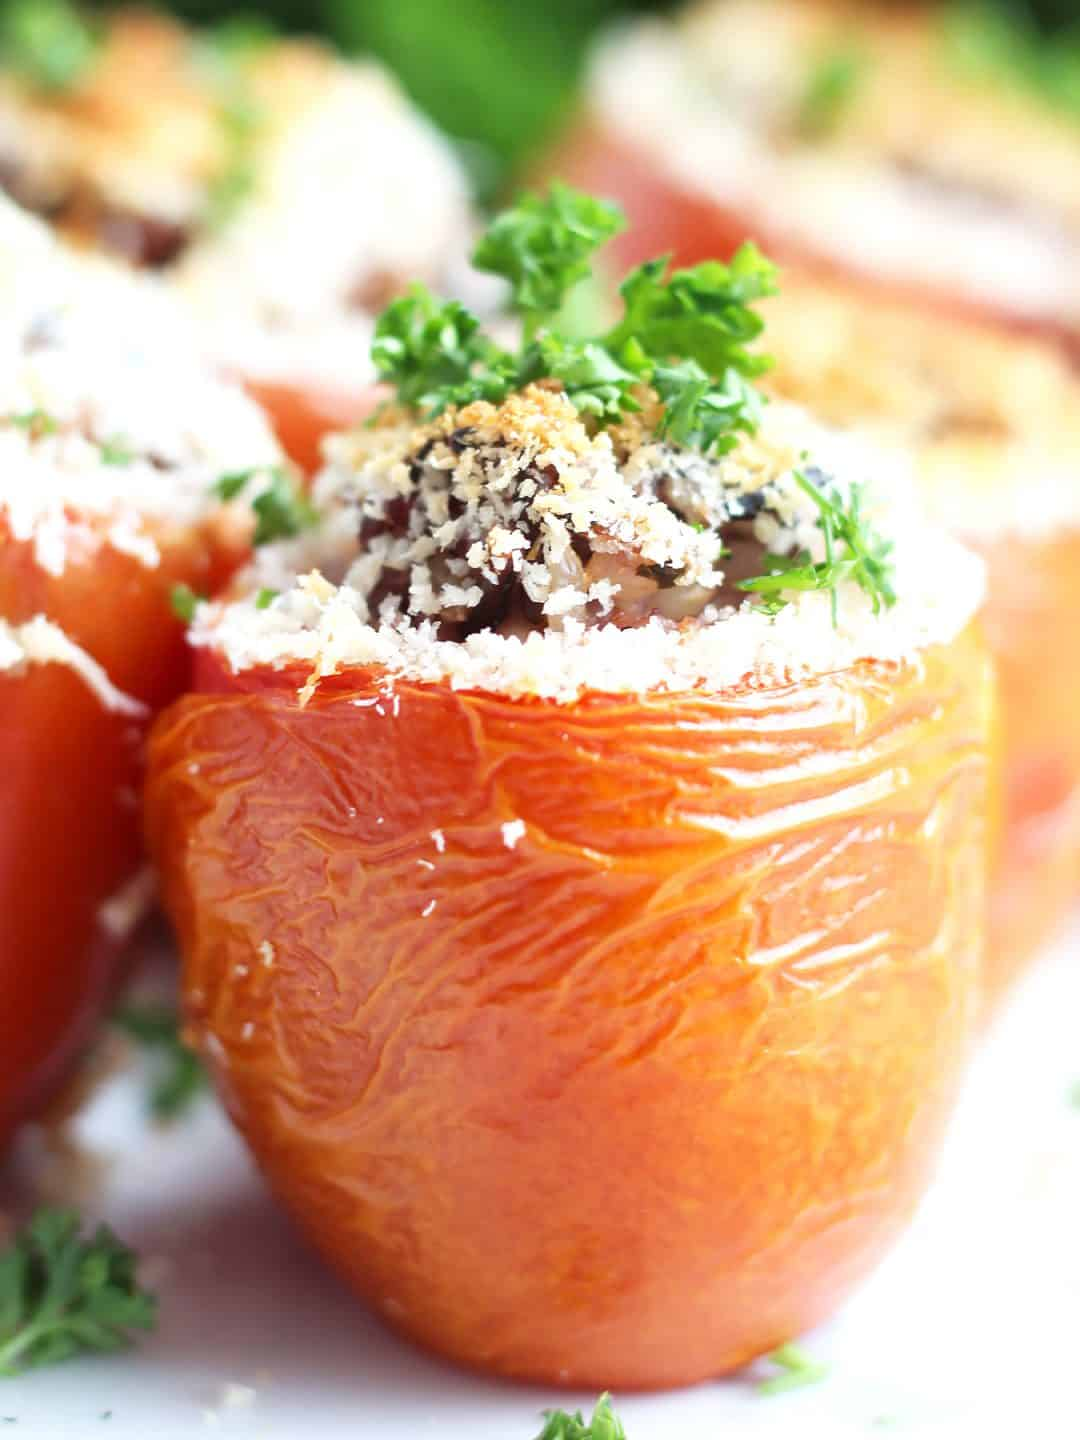 Close up of a wild rice stuffed tomato garnished with chopped parsley.